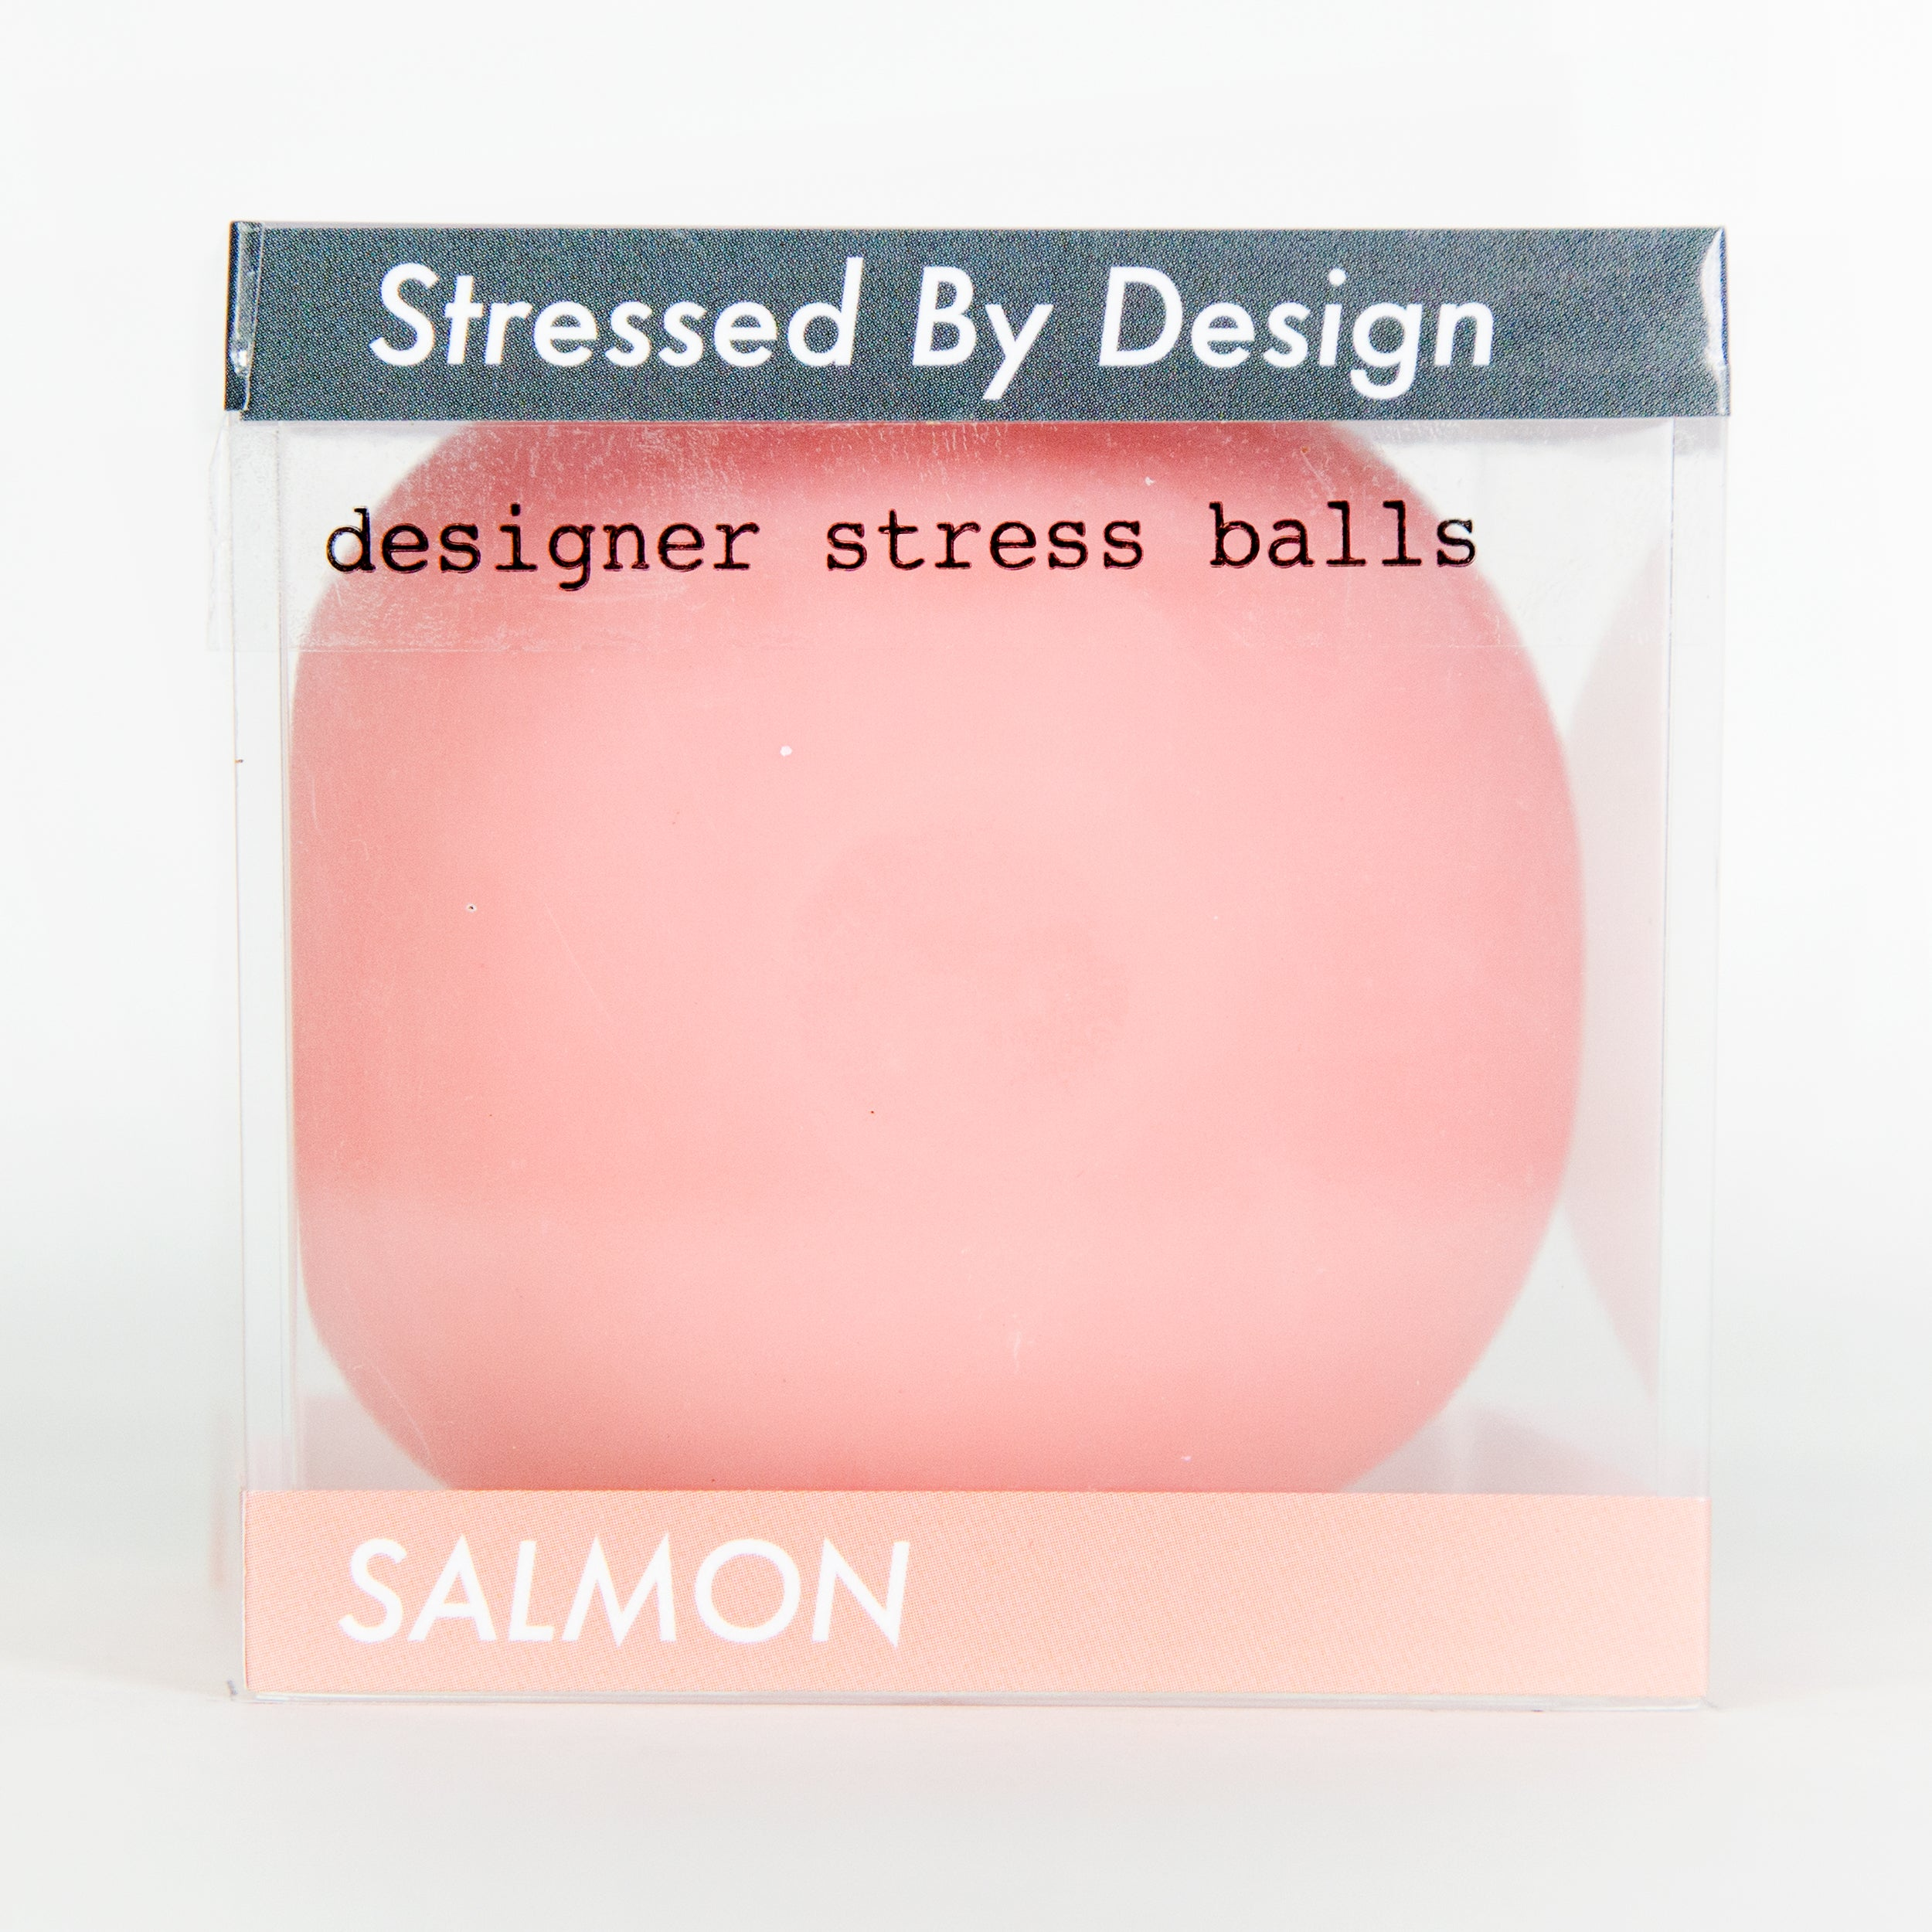 Designer Stress Ball - Salmon